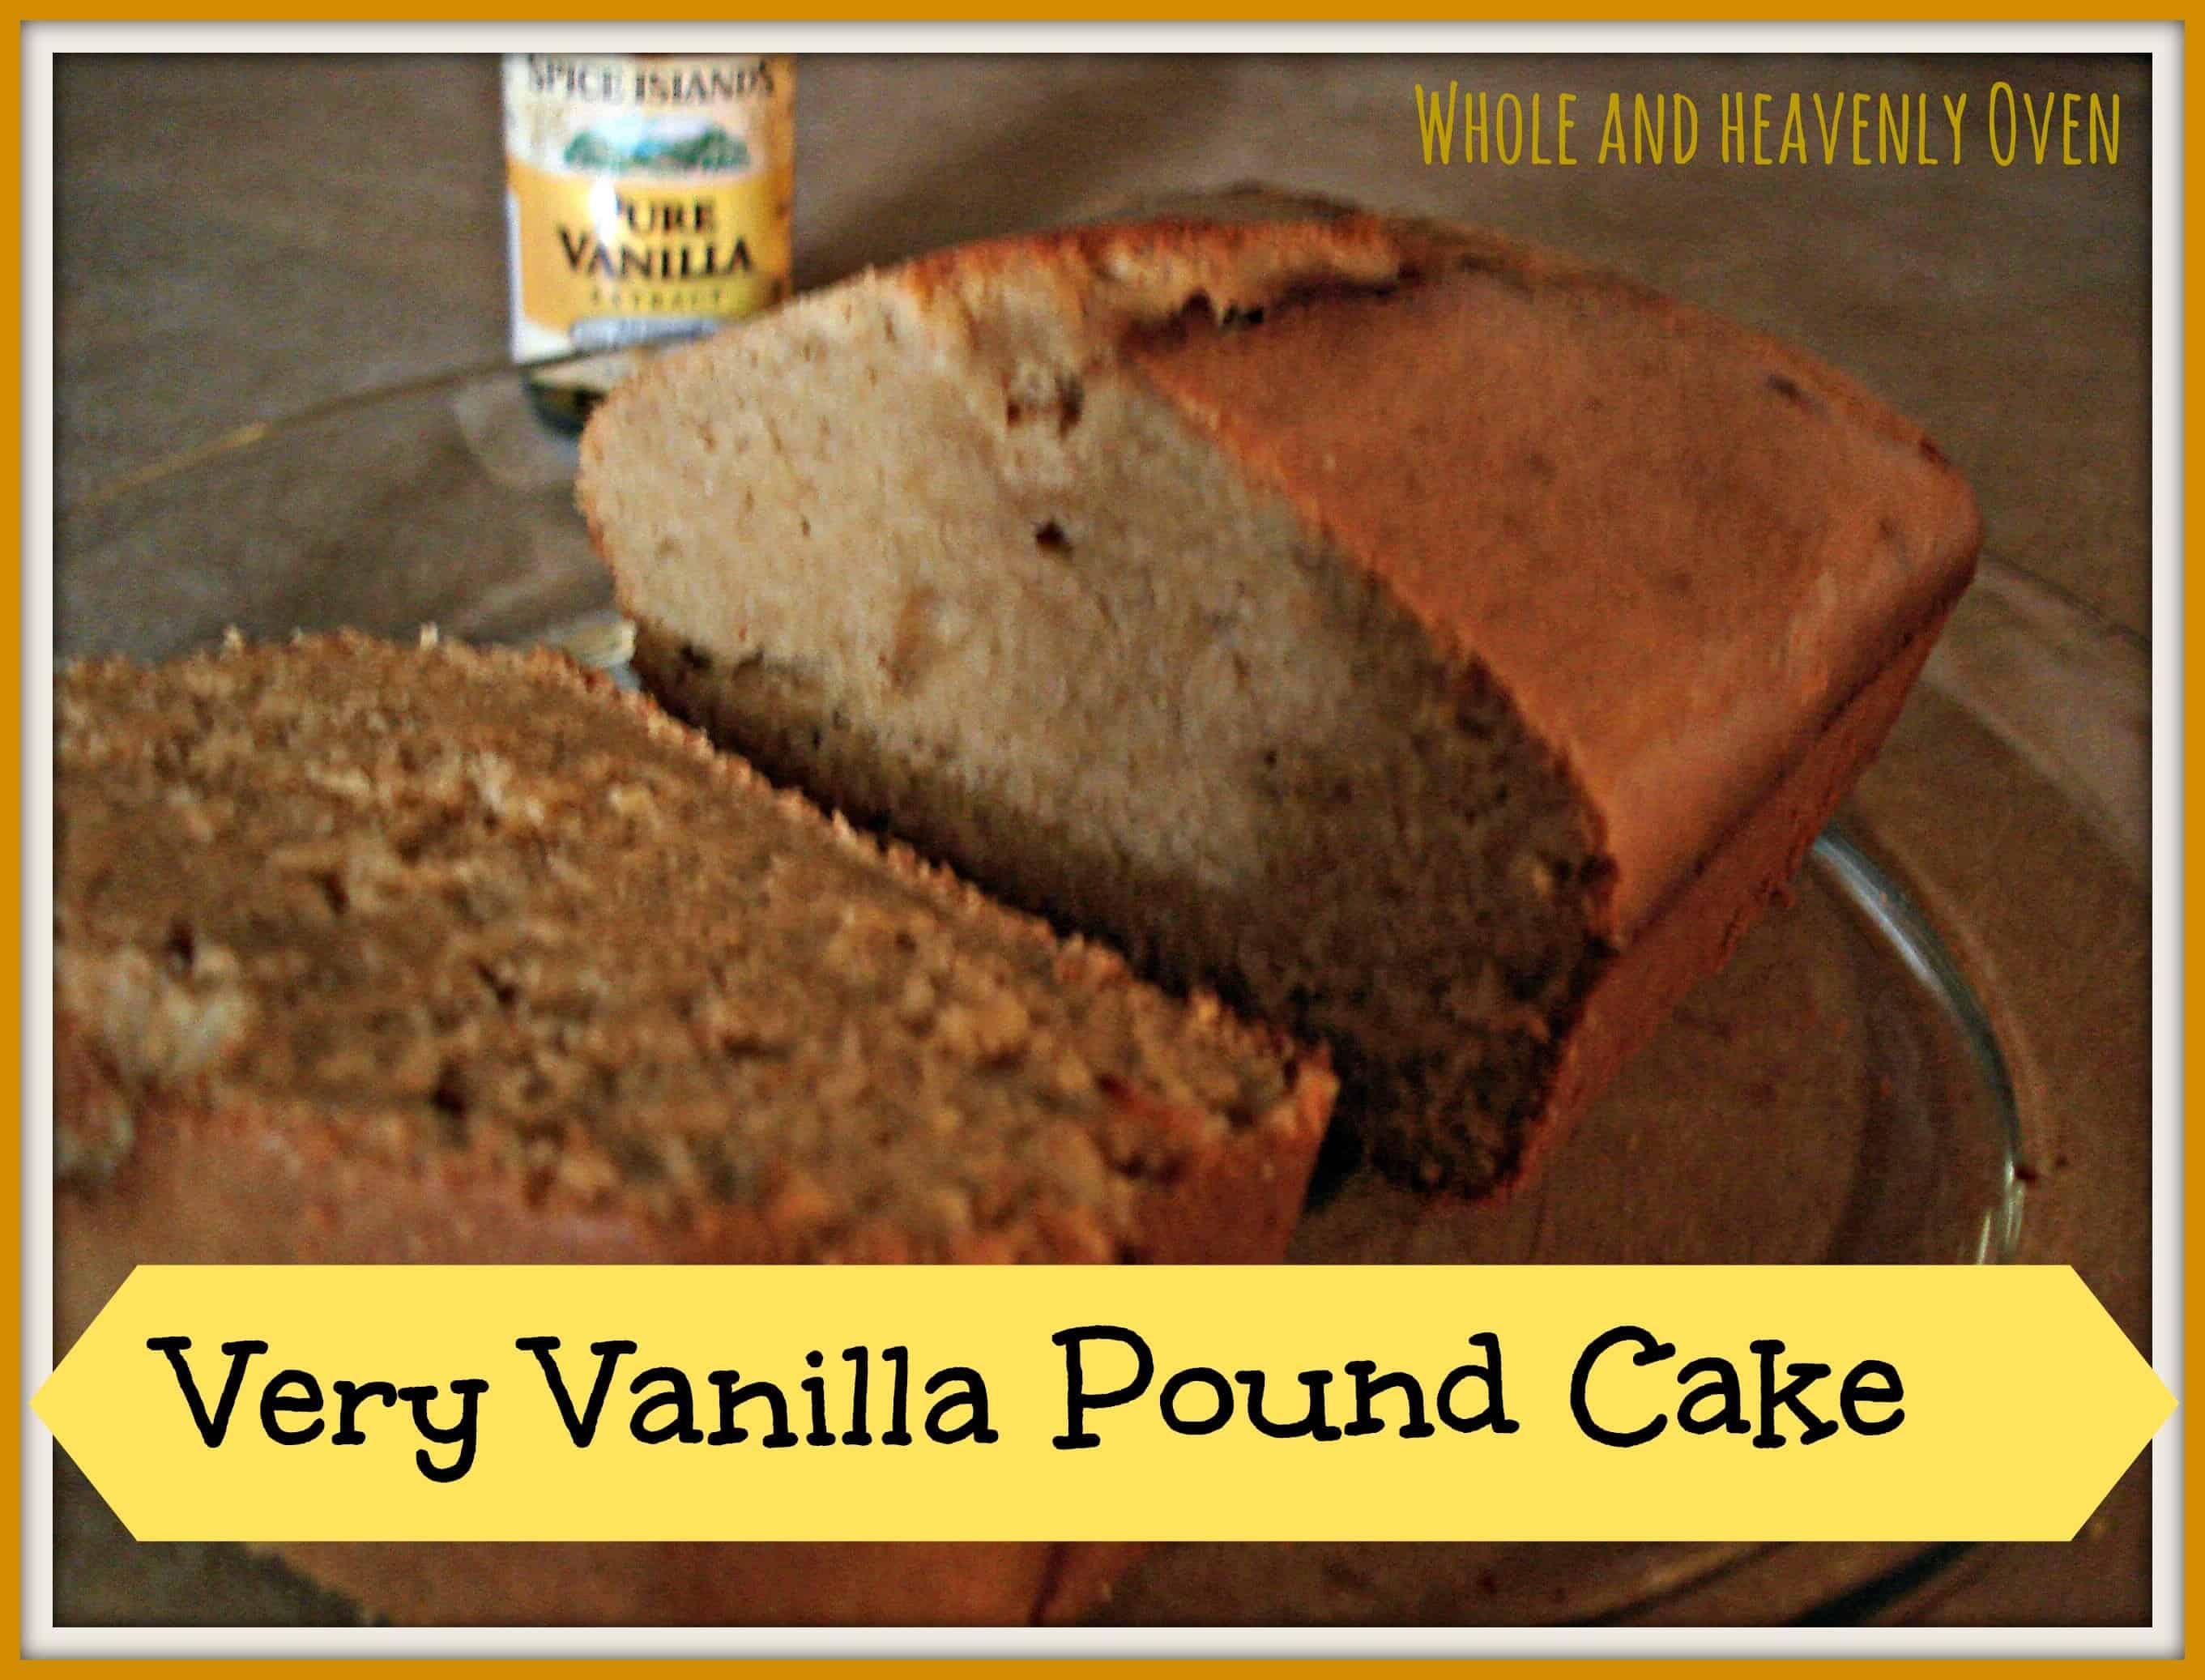 Very Vanilla Pound Cake